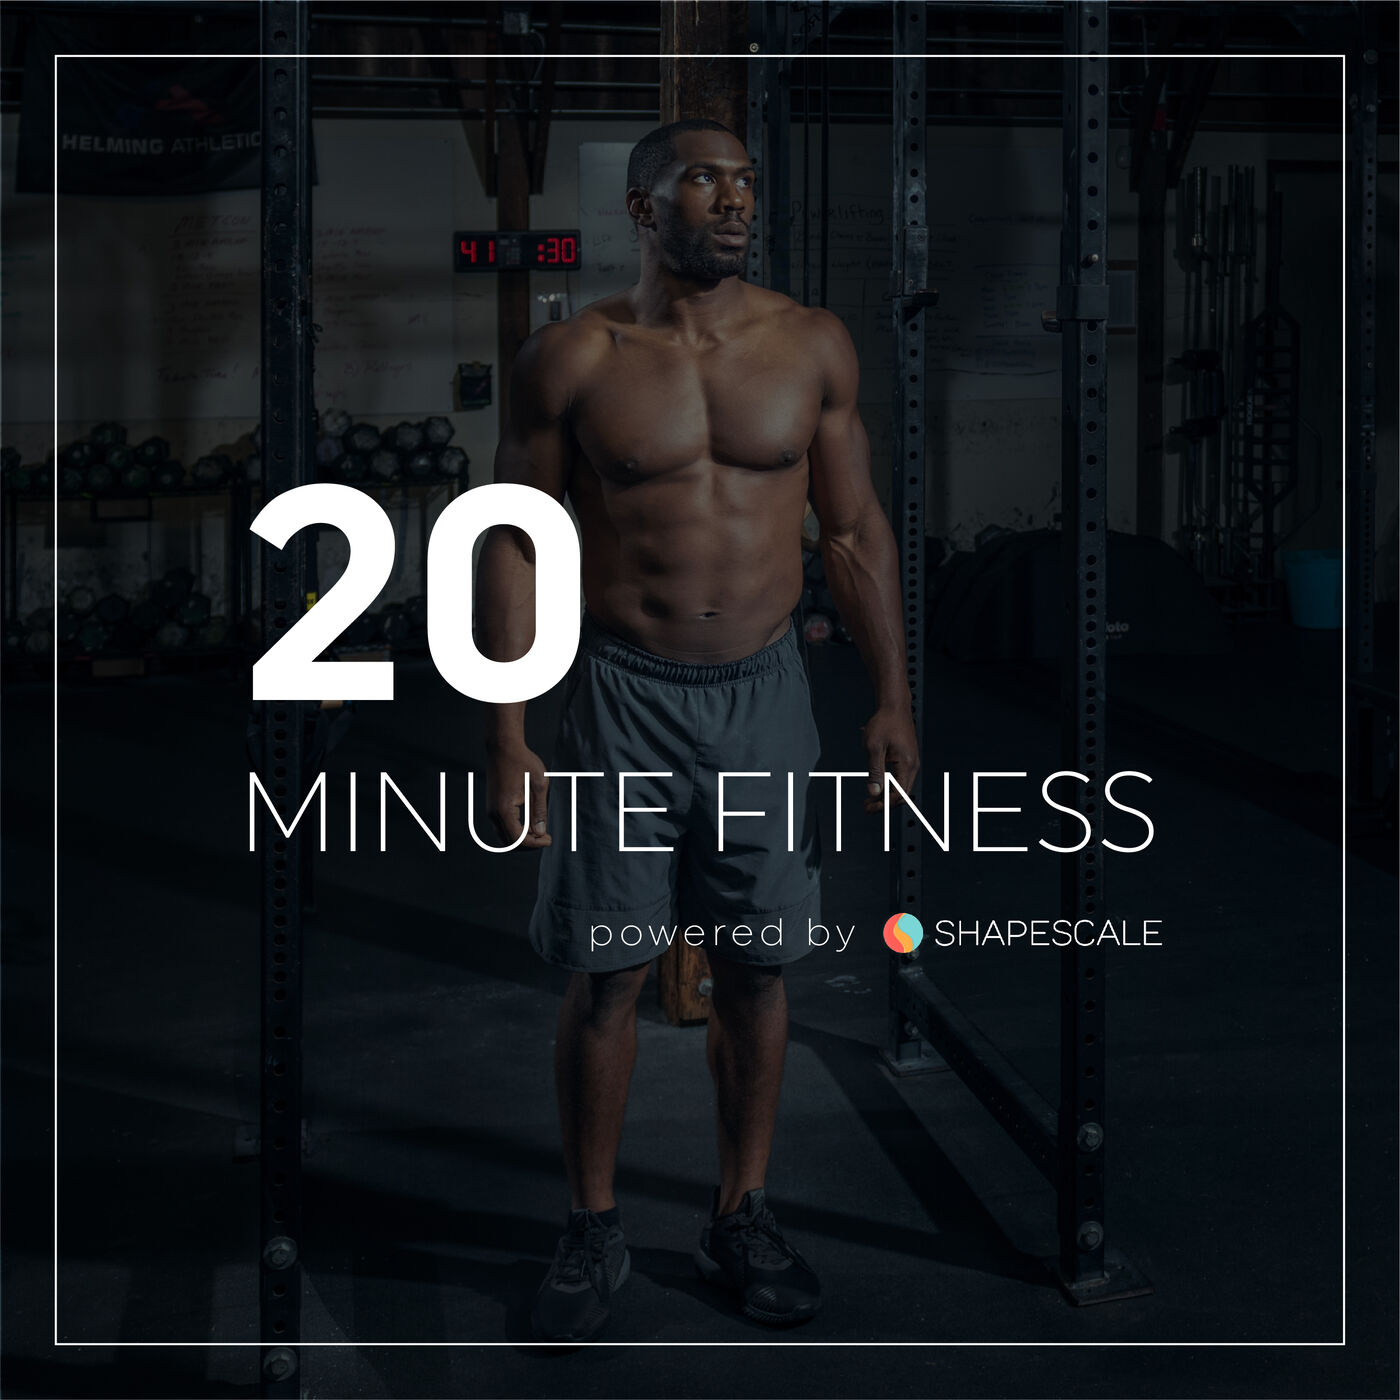 Martin's Story: How To Start Your Body Transformation & Set Goals - 20 Minutes Fitness Episode #236